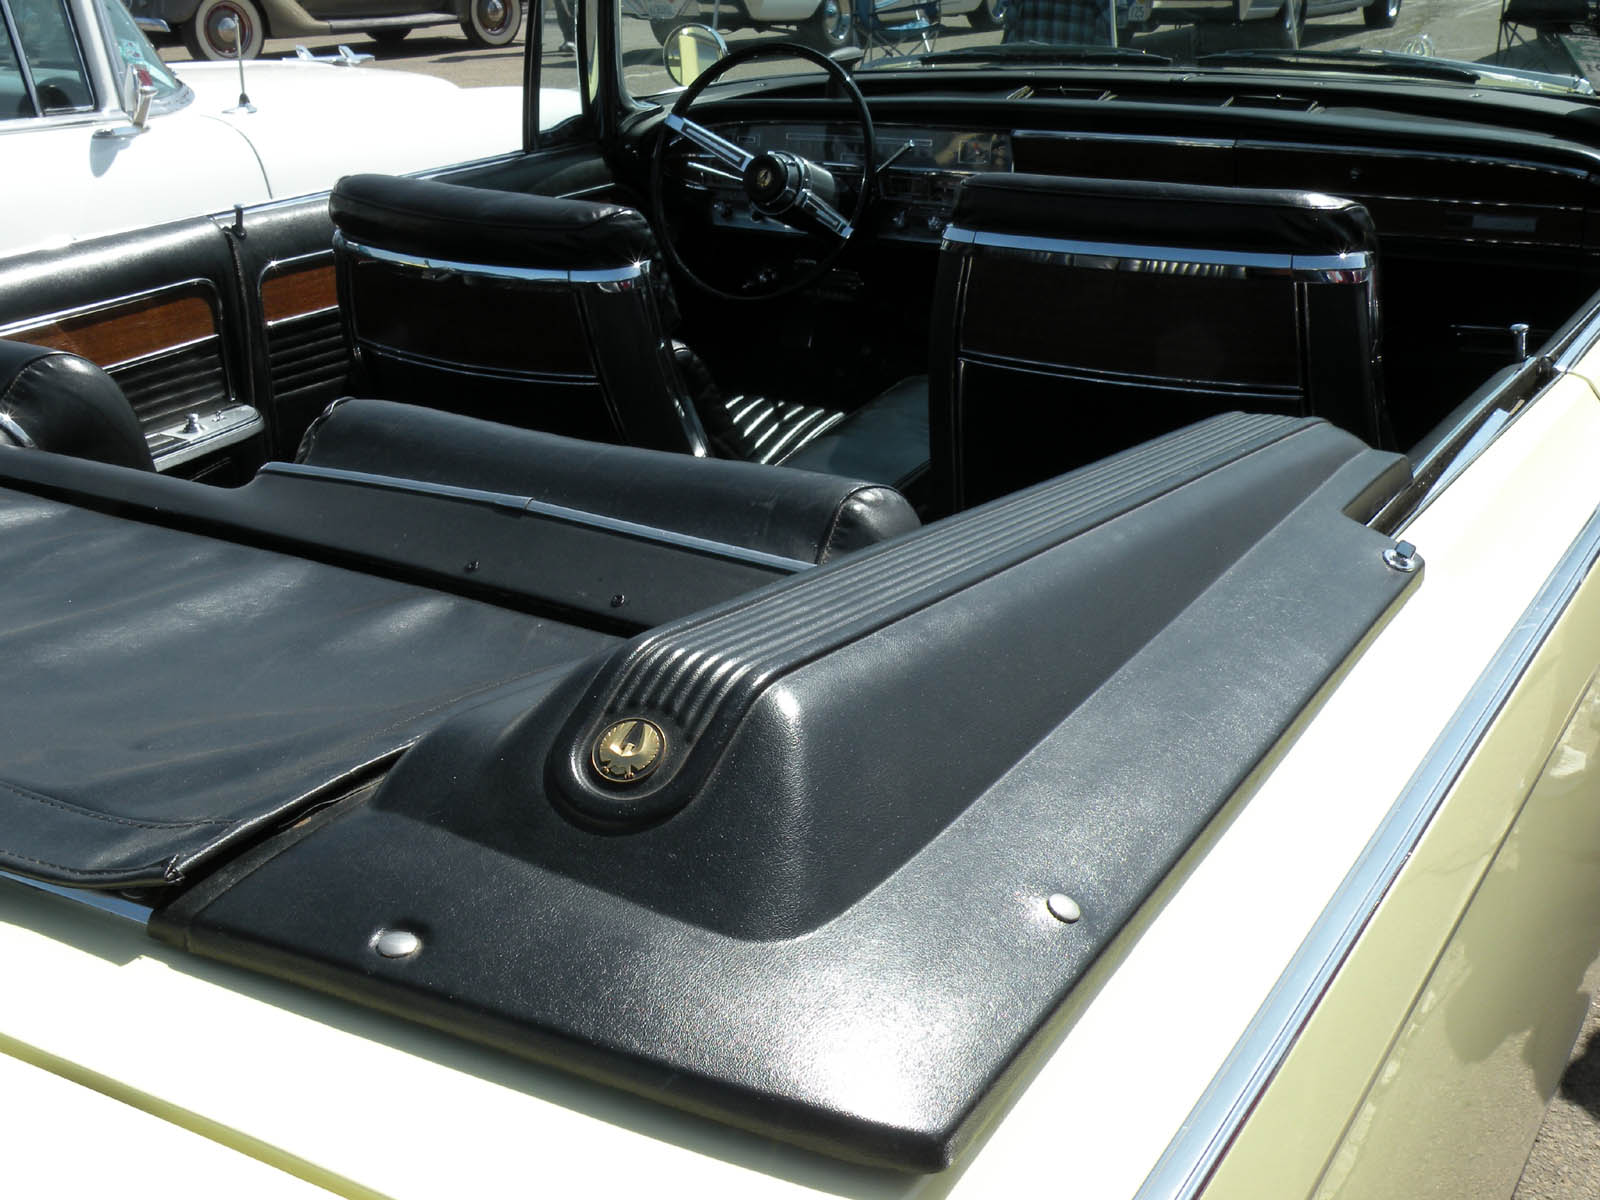 1966 Chrysler Imperial, just